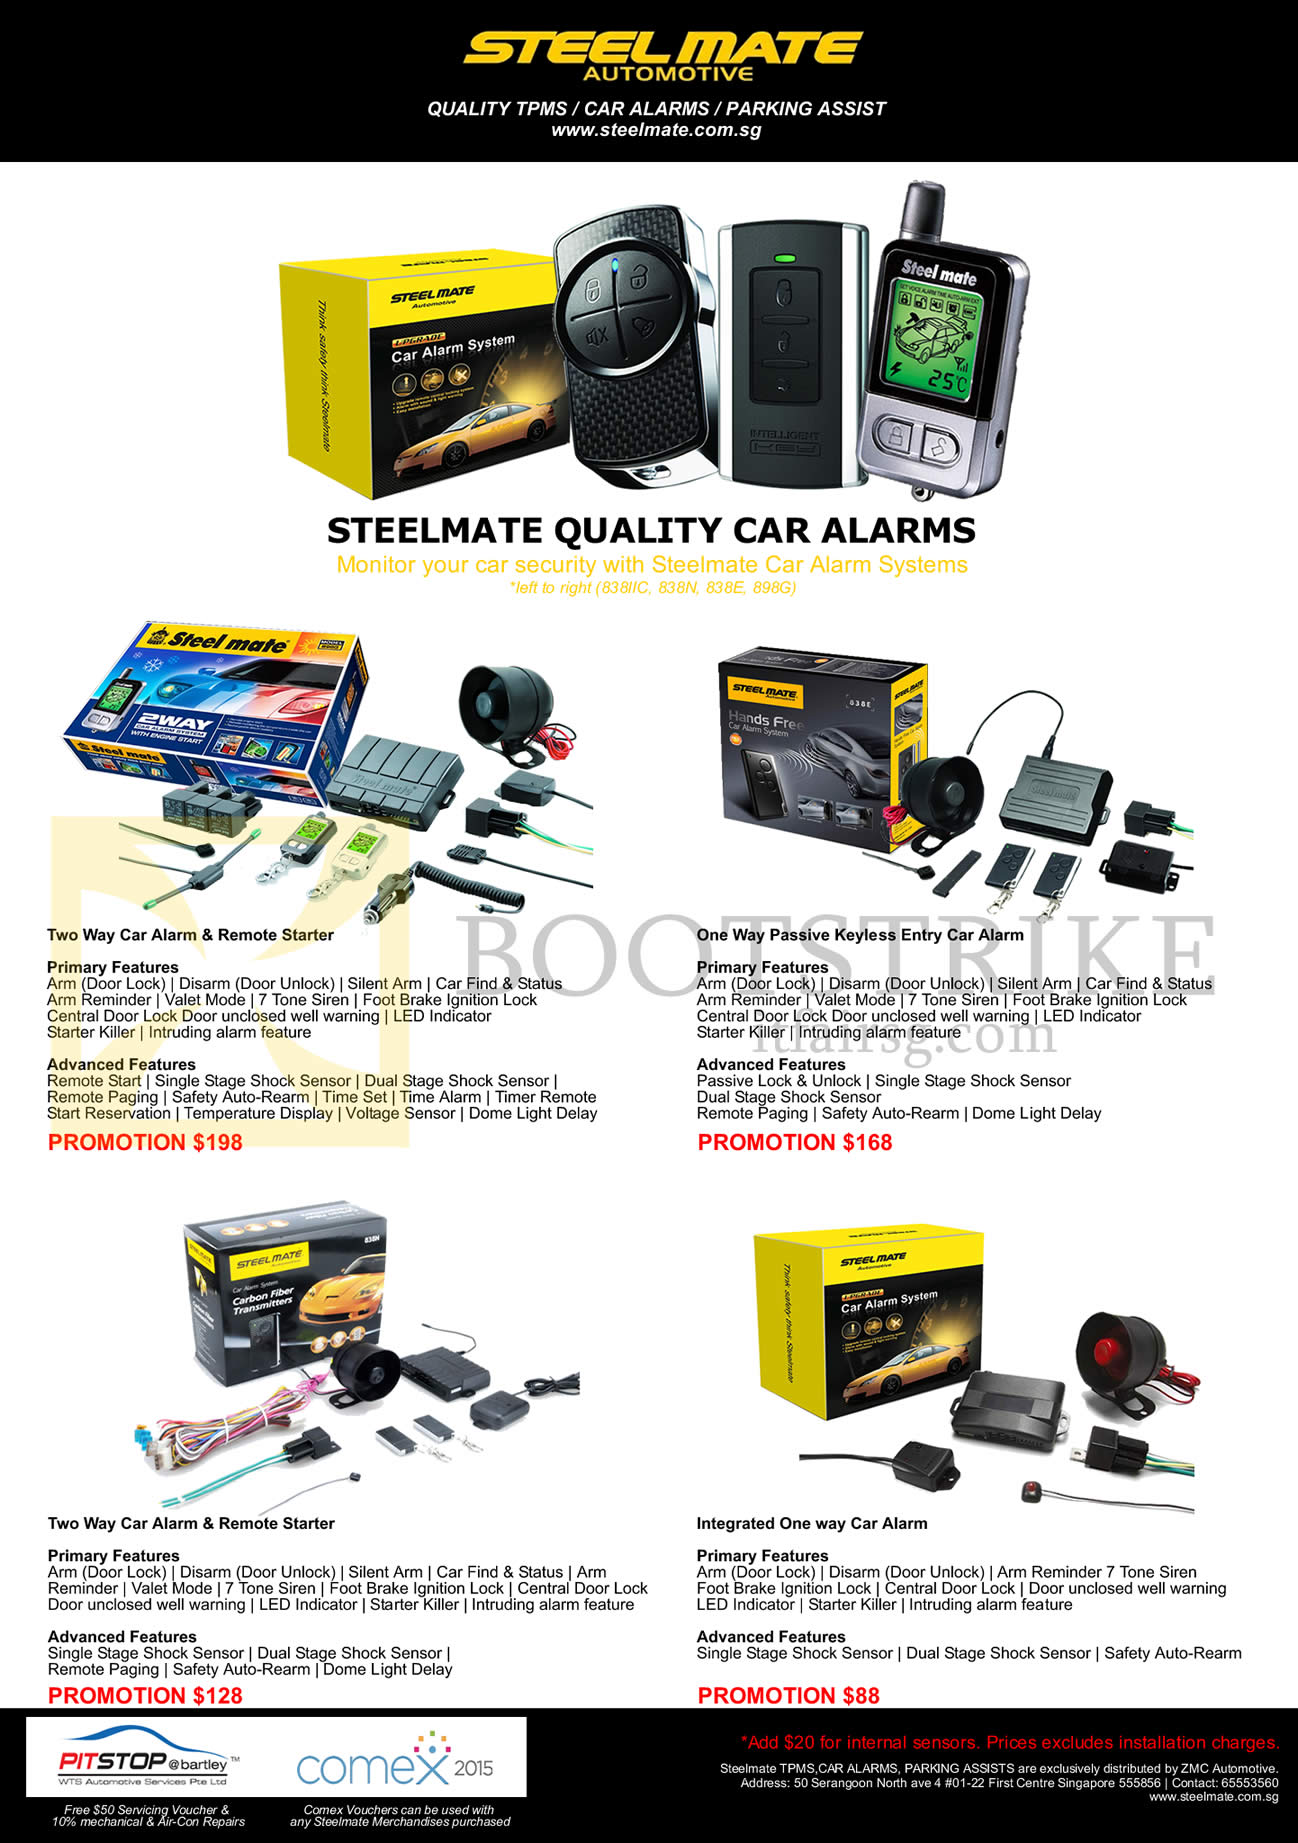 Zmc Steelmate Car Alarms Remote Starter One Way Two Product Comex 2015 Price List Image Brochure Of